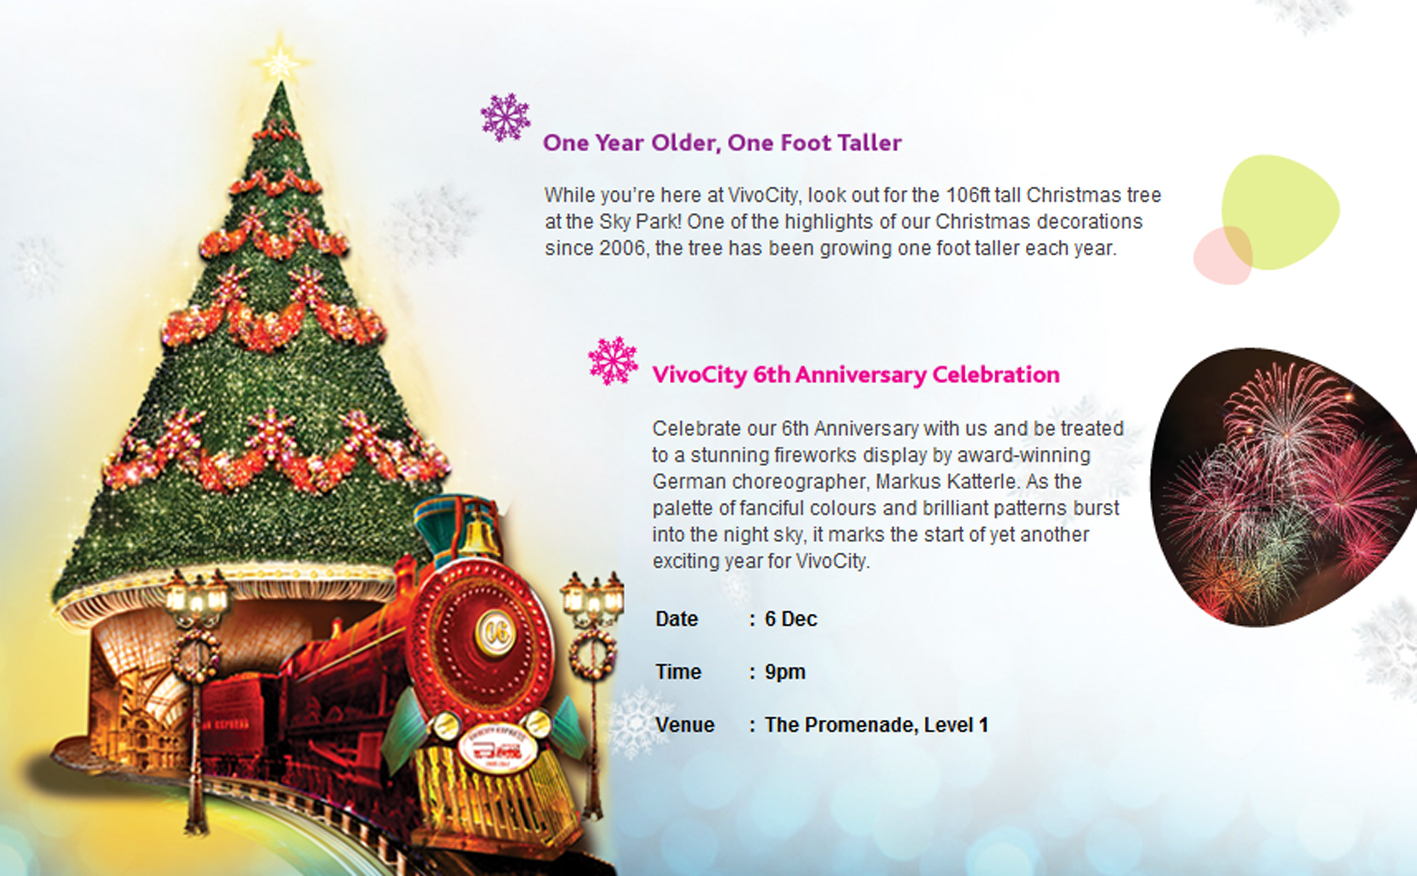 Ocbc christmas giveaway to needy